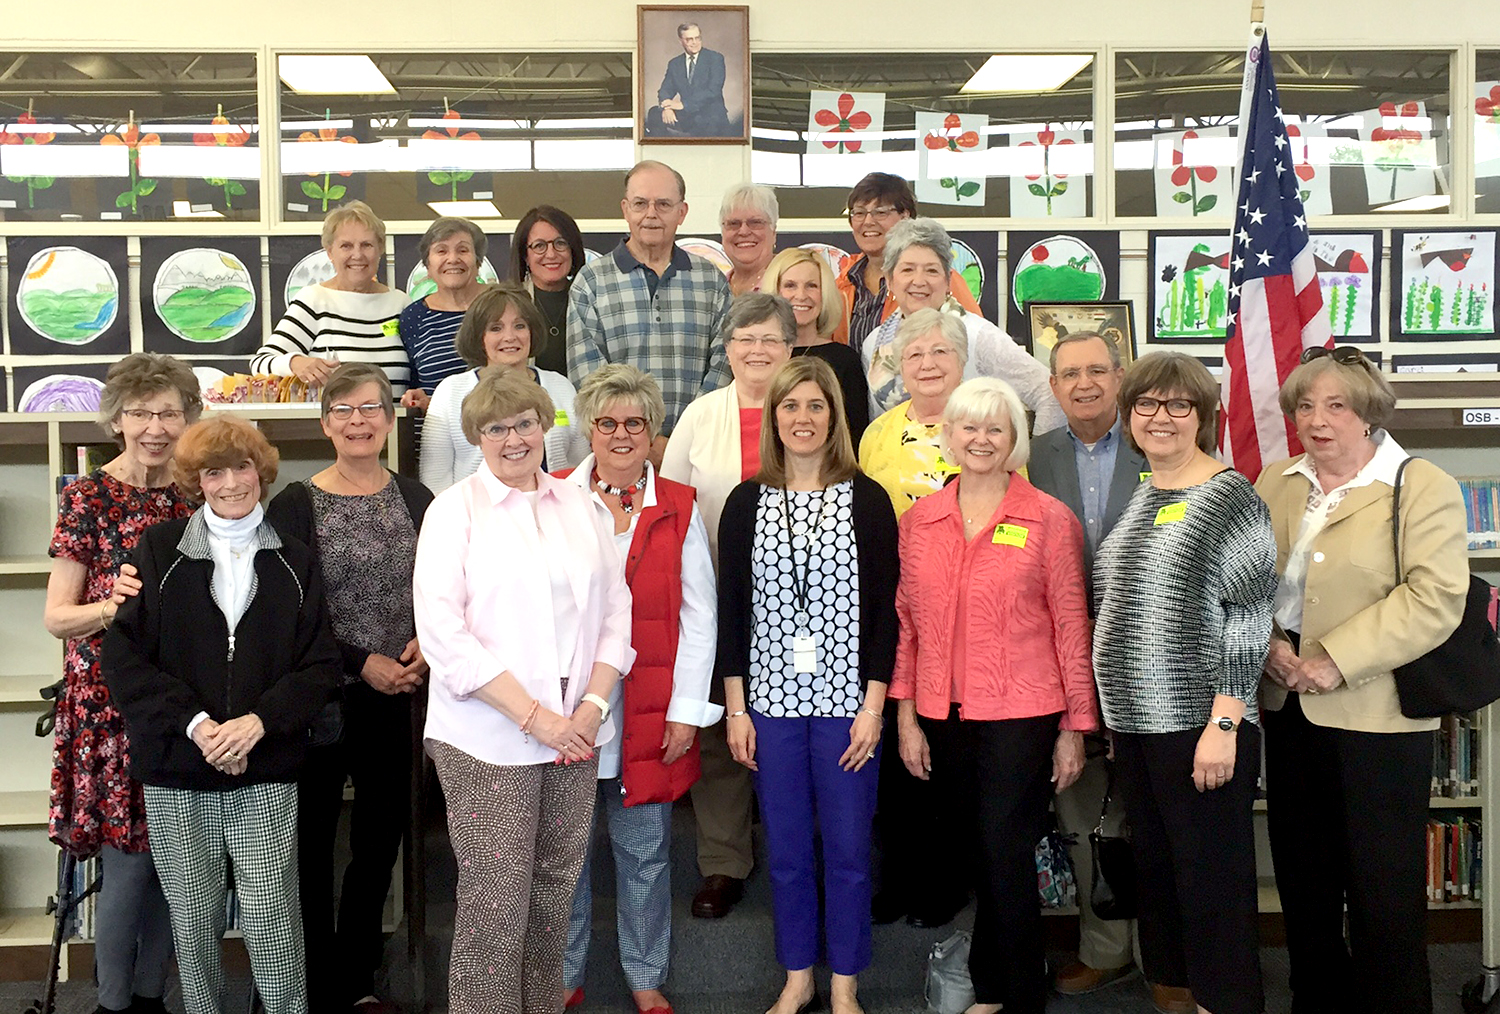 Retirees and Staff pose with Former Principal Larry Studer